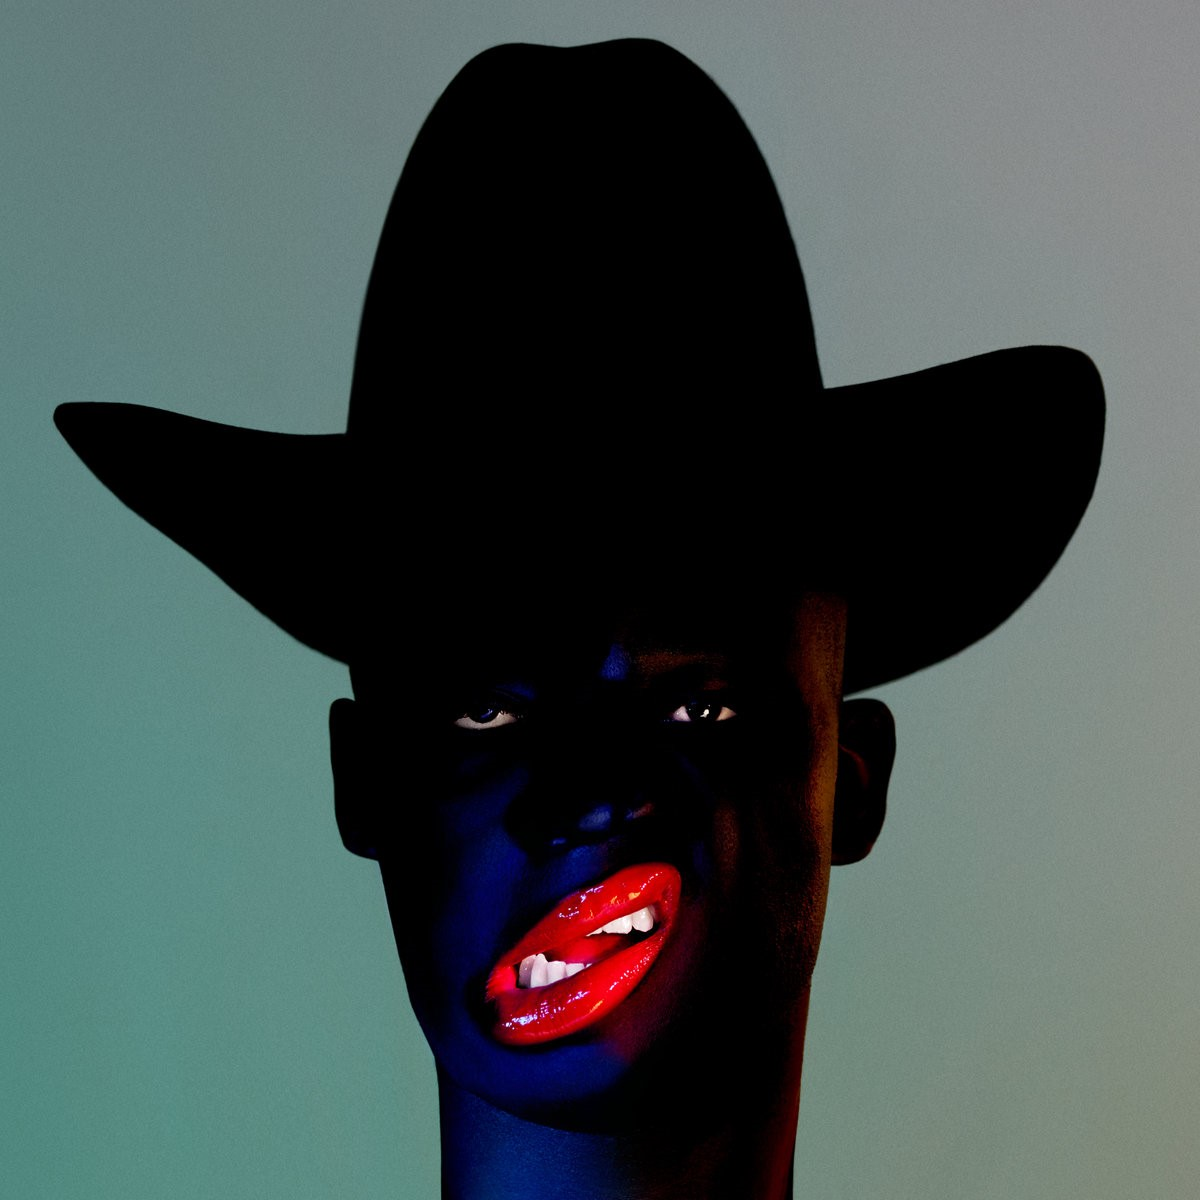 2. - Cocoa SugarBy Young Fathers